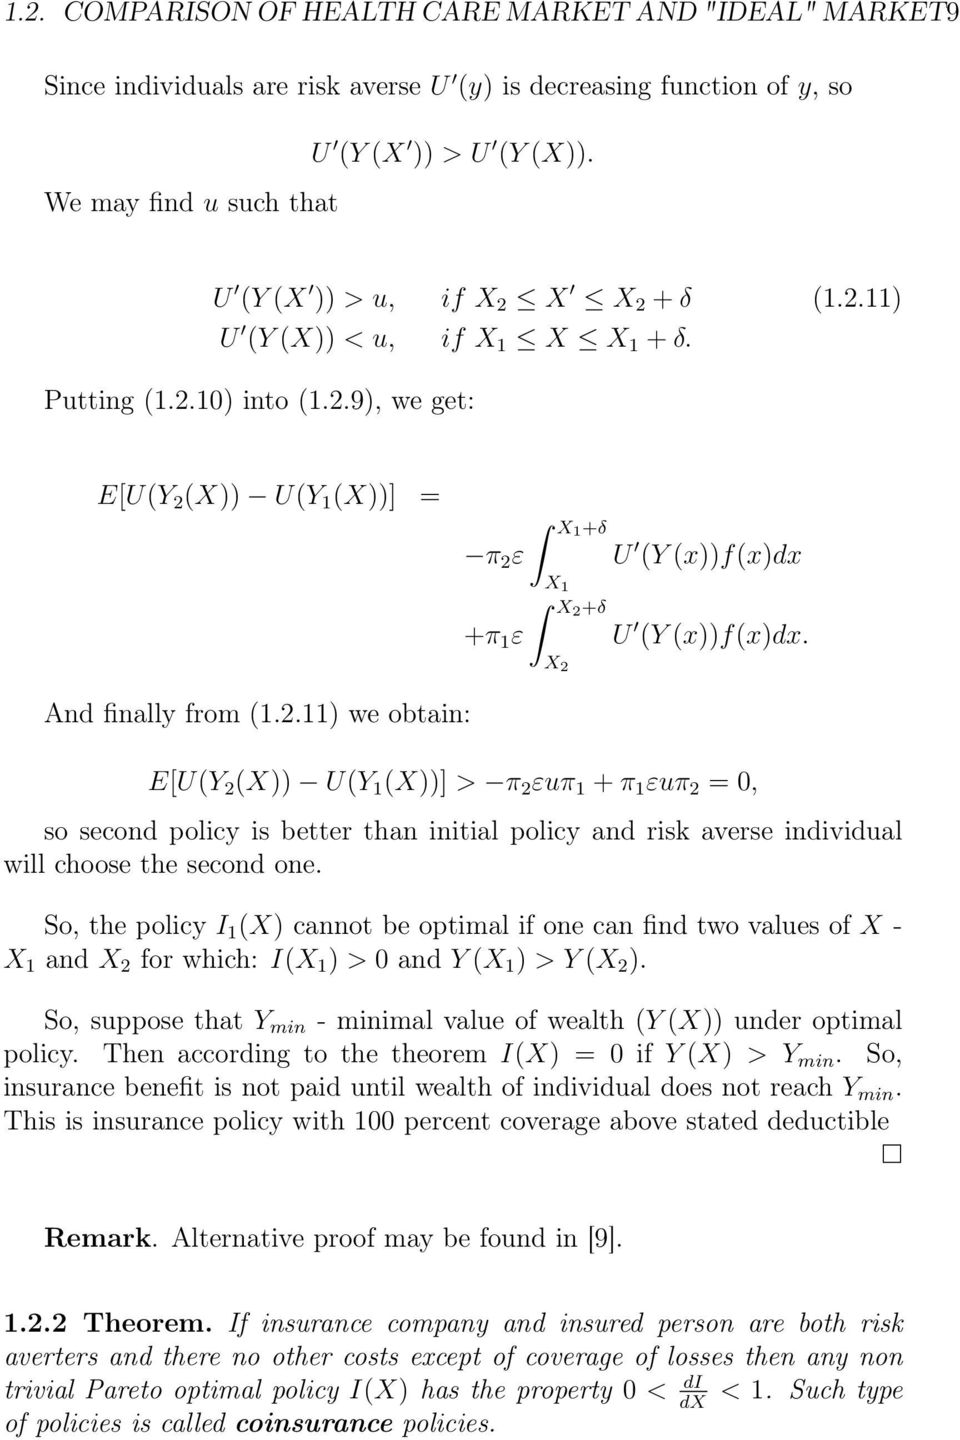 And finally from (1.2.11) we obtain: E[U(Y 2 (X)) U(Y 1 (X))] > π 2 εuπ 1 + π 1 εuπ 2 =, so second policy is better than initial policy and risk averse individual will choose the second one.